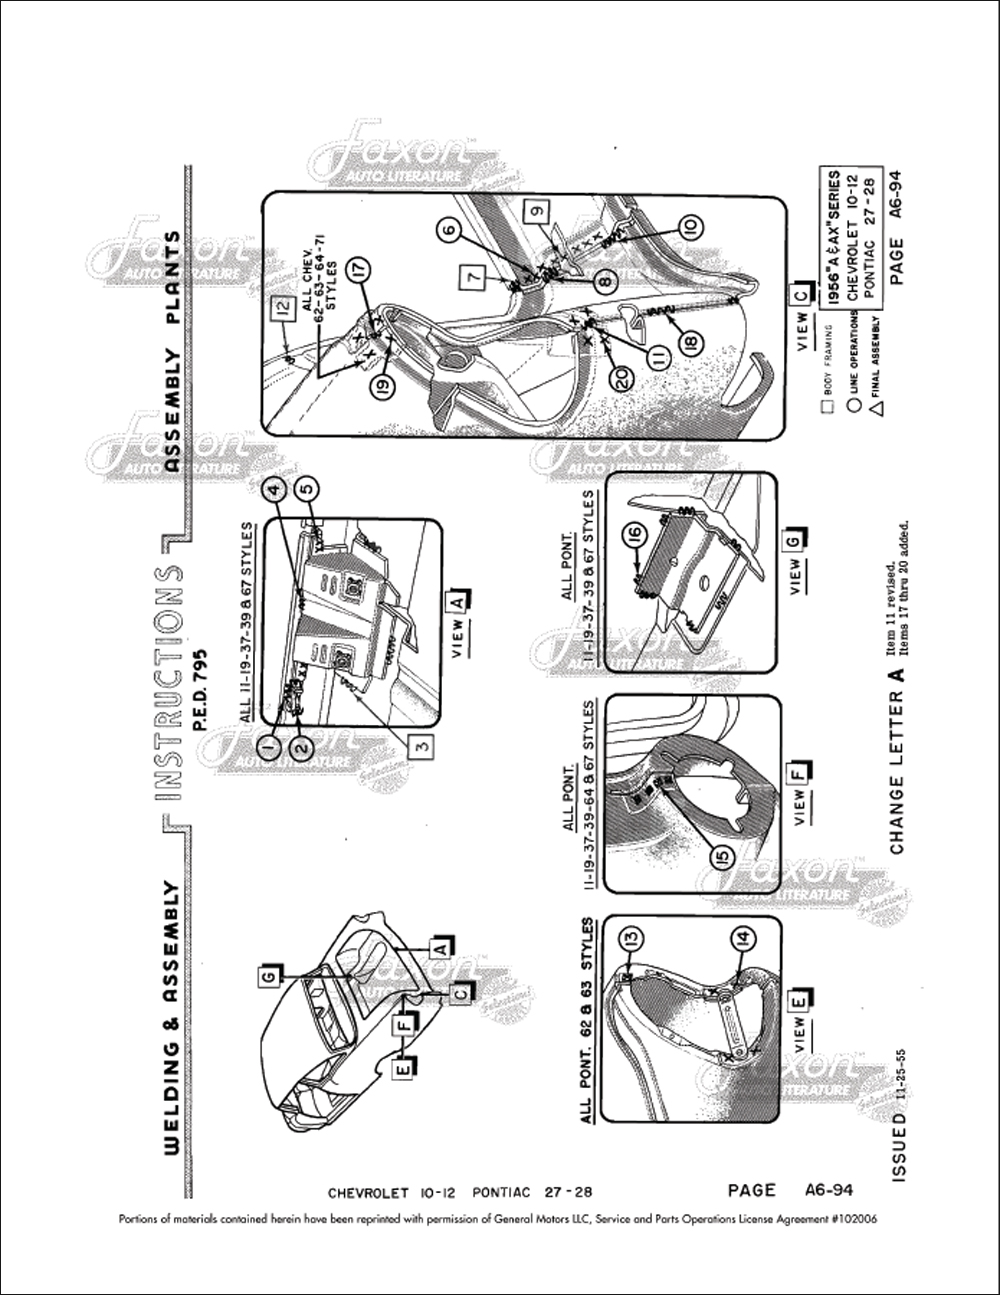 1956 chevrolet pontiac fisher body welding assembly manual